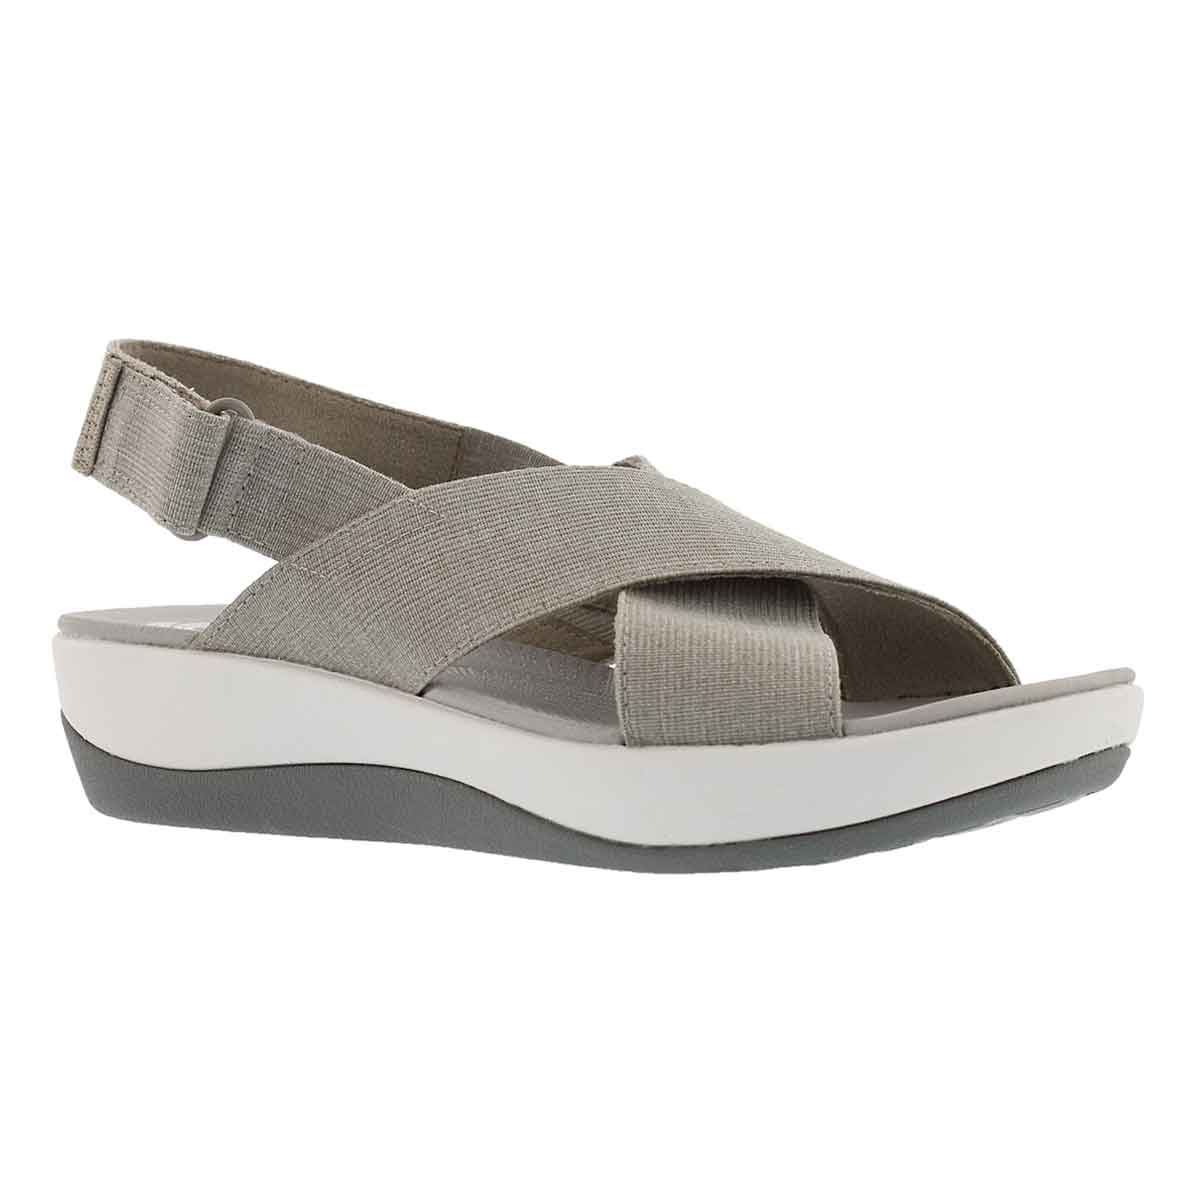 Women's ARLA KAYDIN sand/white wedge sandals